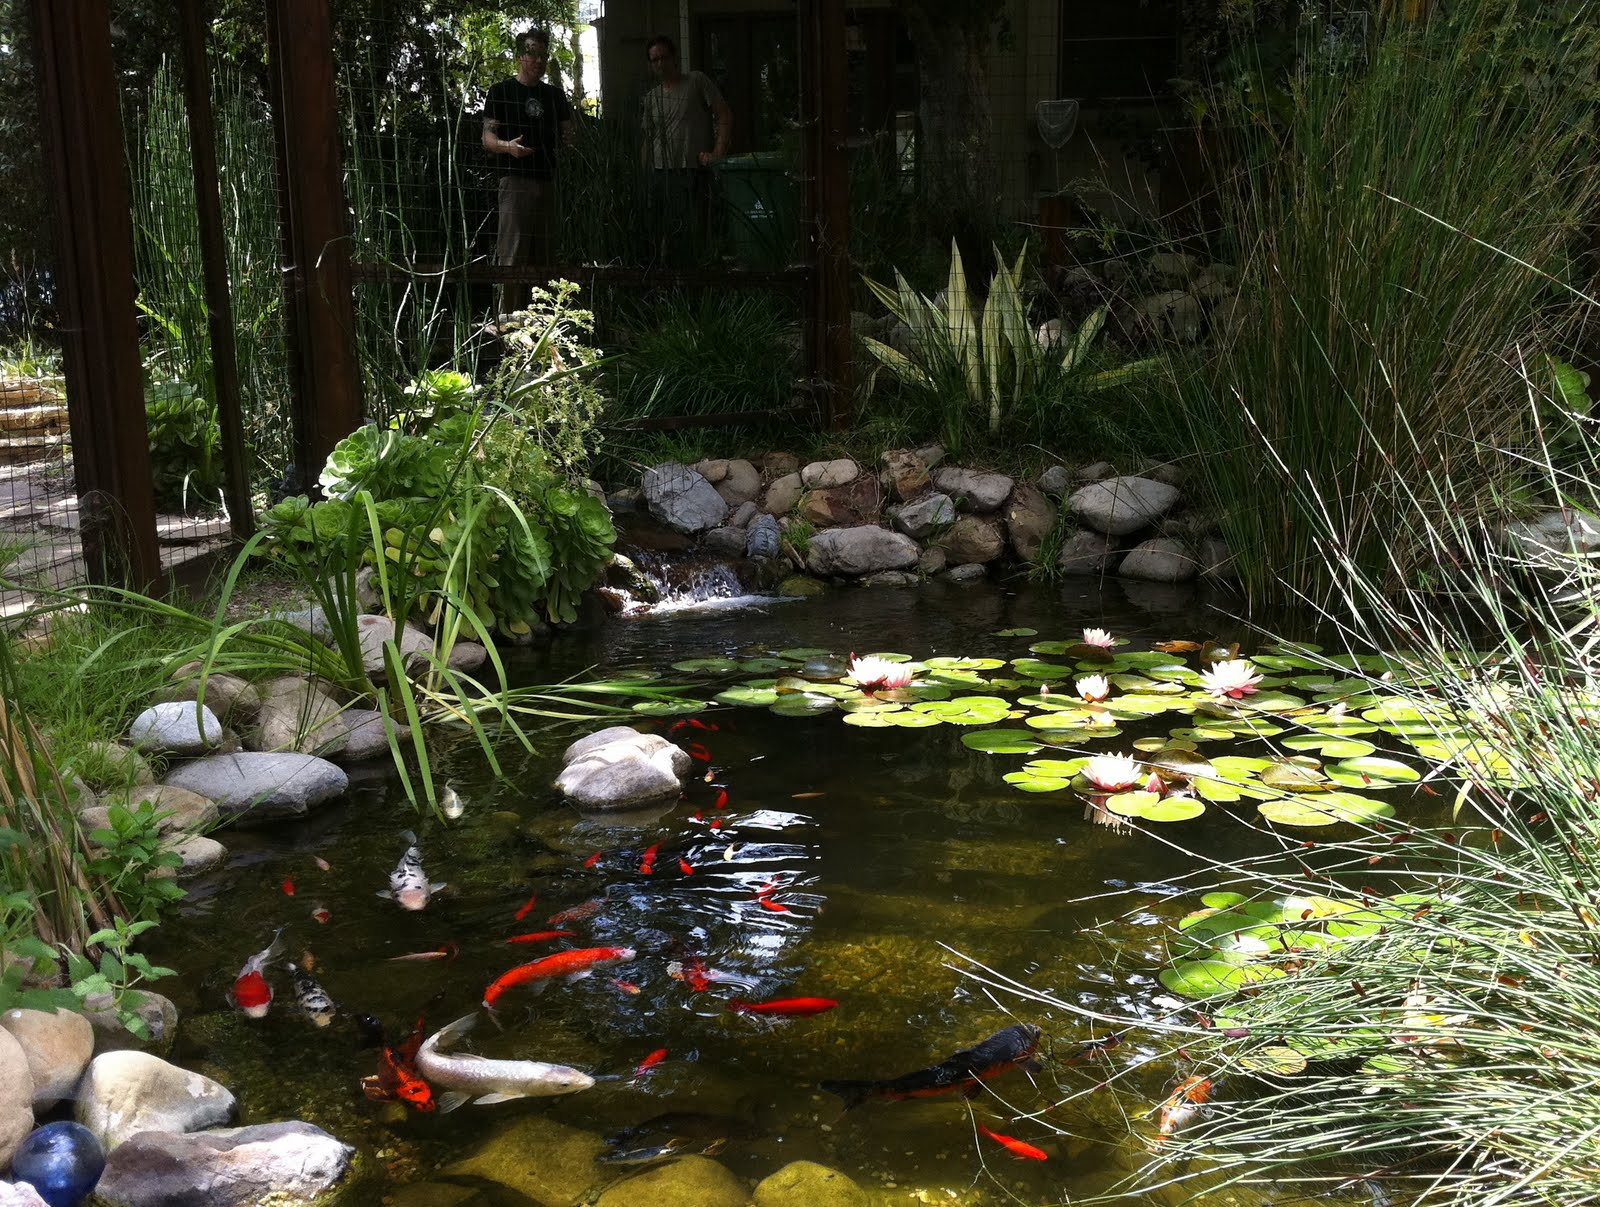 Elgin eco house garden serenity in the midst of the city for Backyard koi fish pond